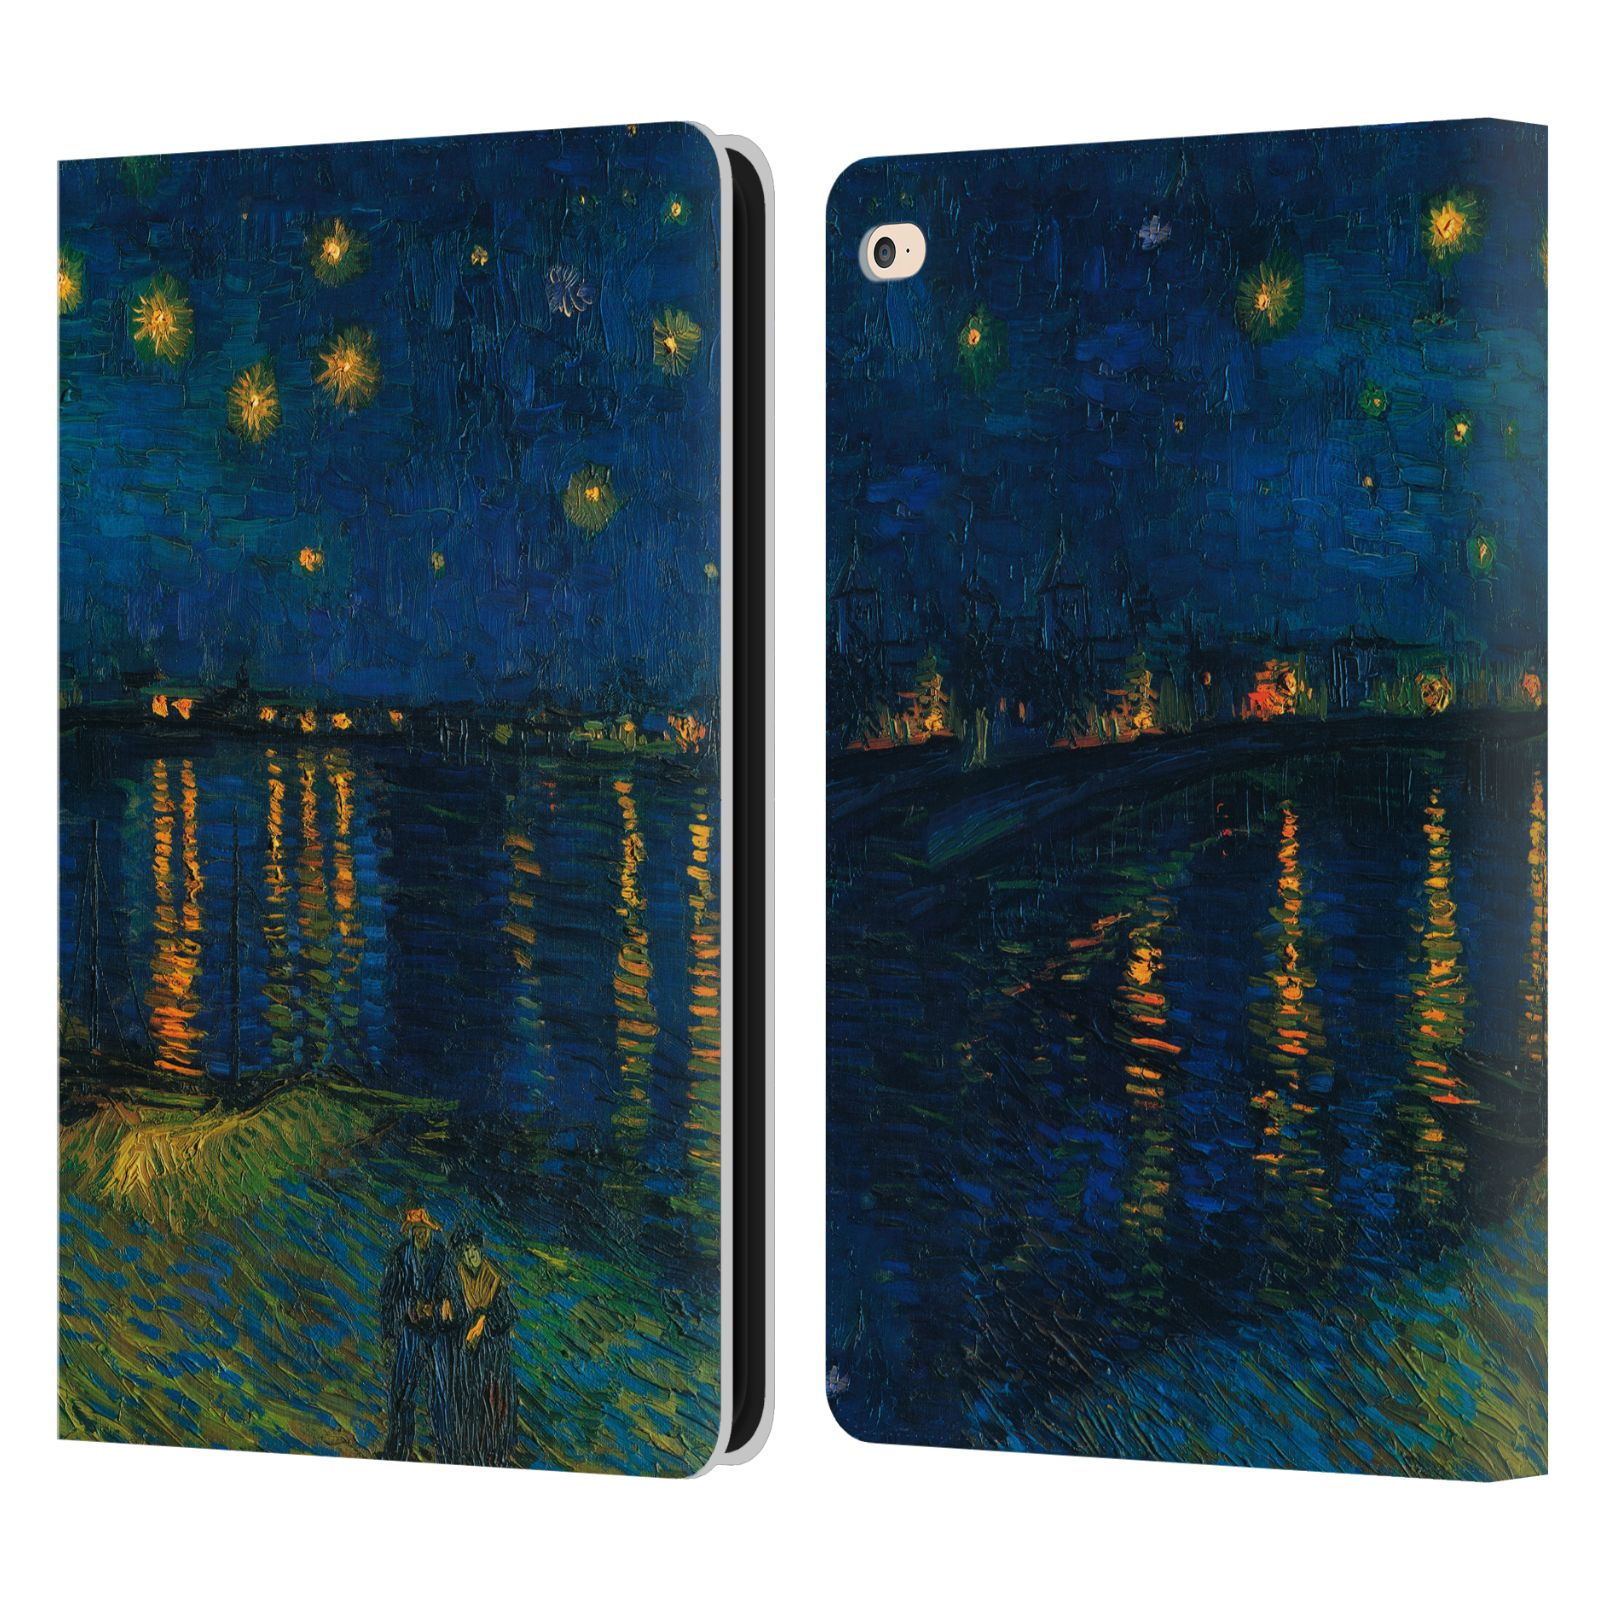 OFFICIAL-MASTERS-COLLECTION-PAINTINGS-2-LEATHER-BOOK-WALLET-CASE-FOR-APPLE-iPAD